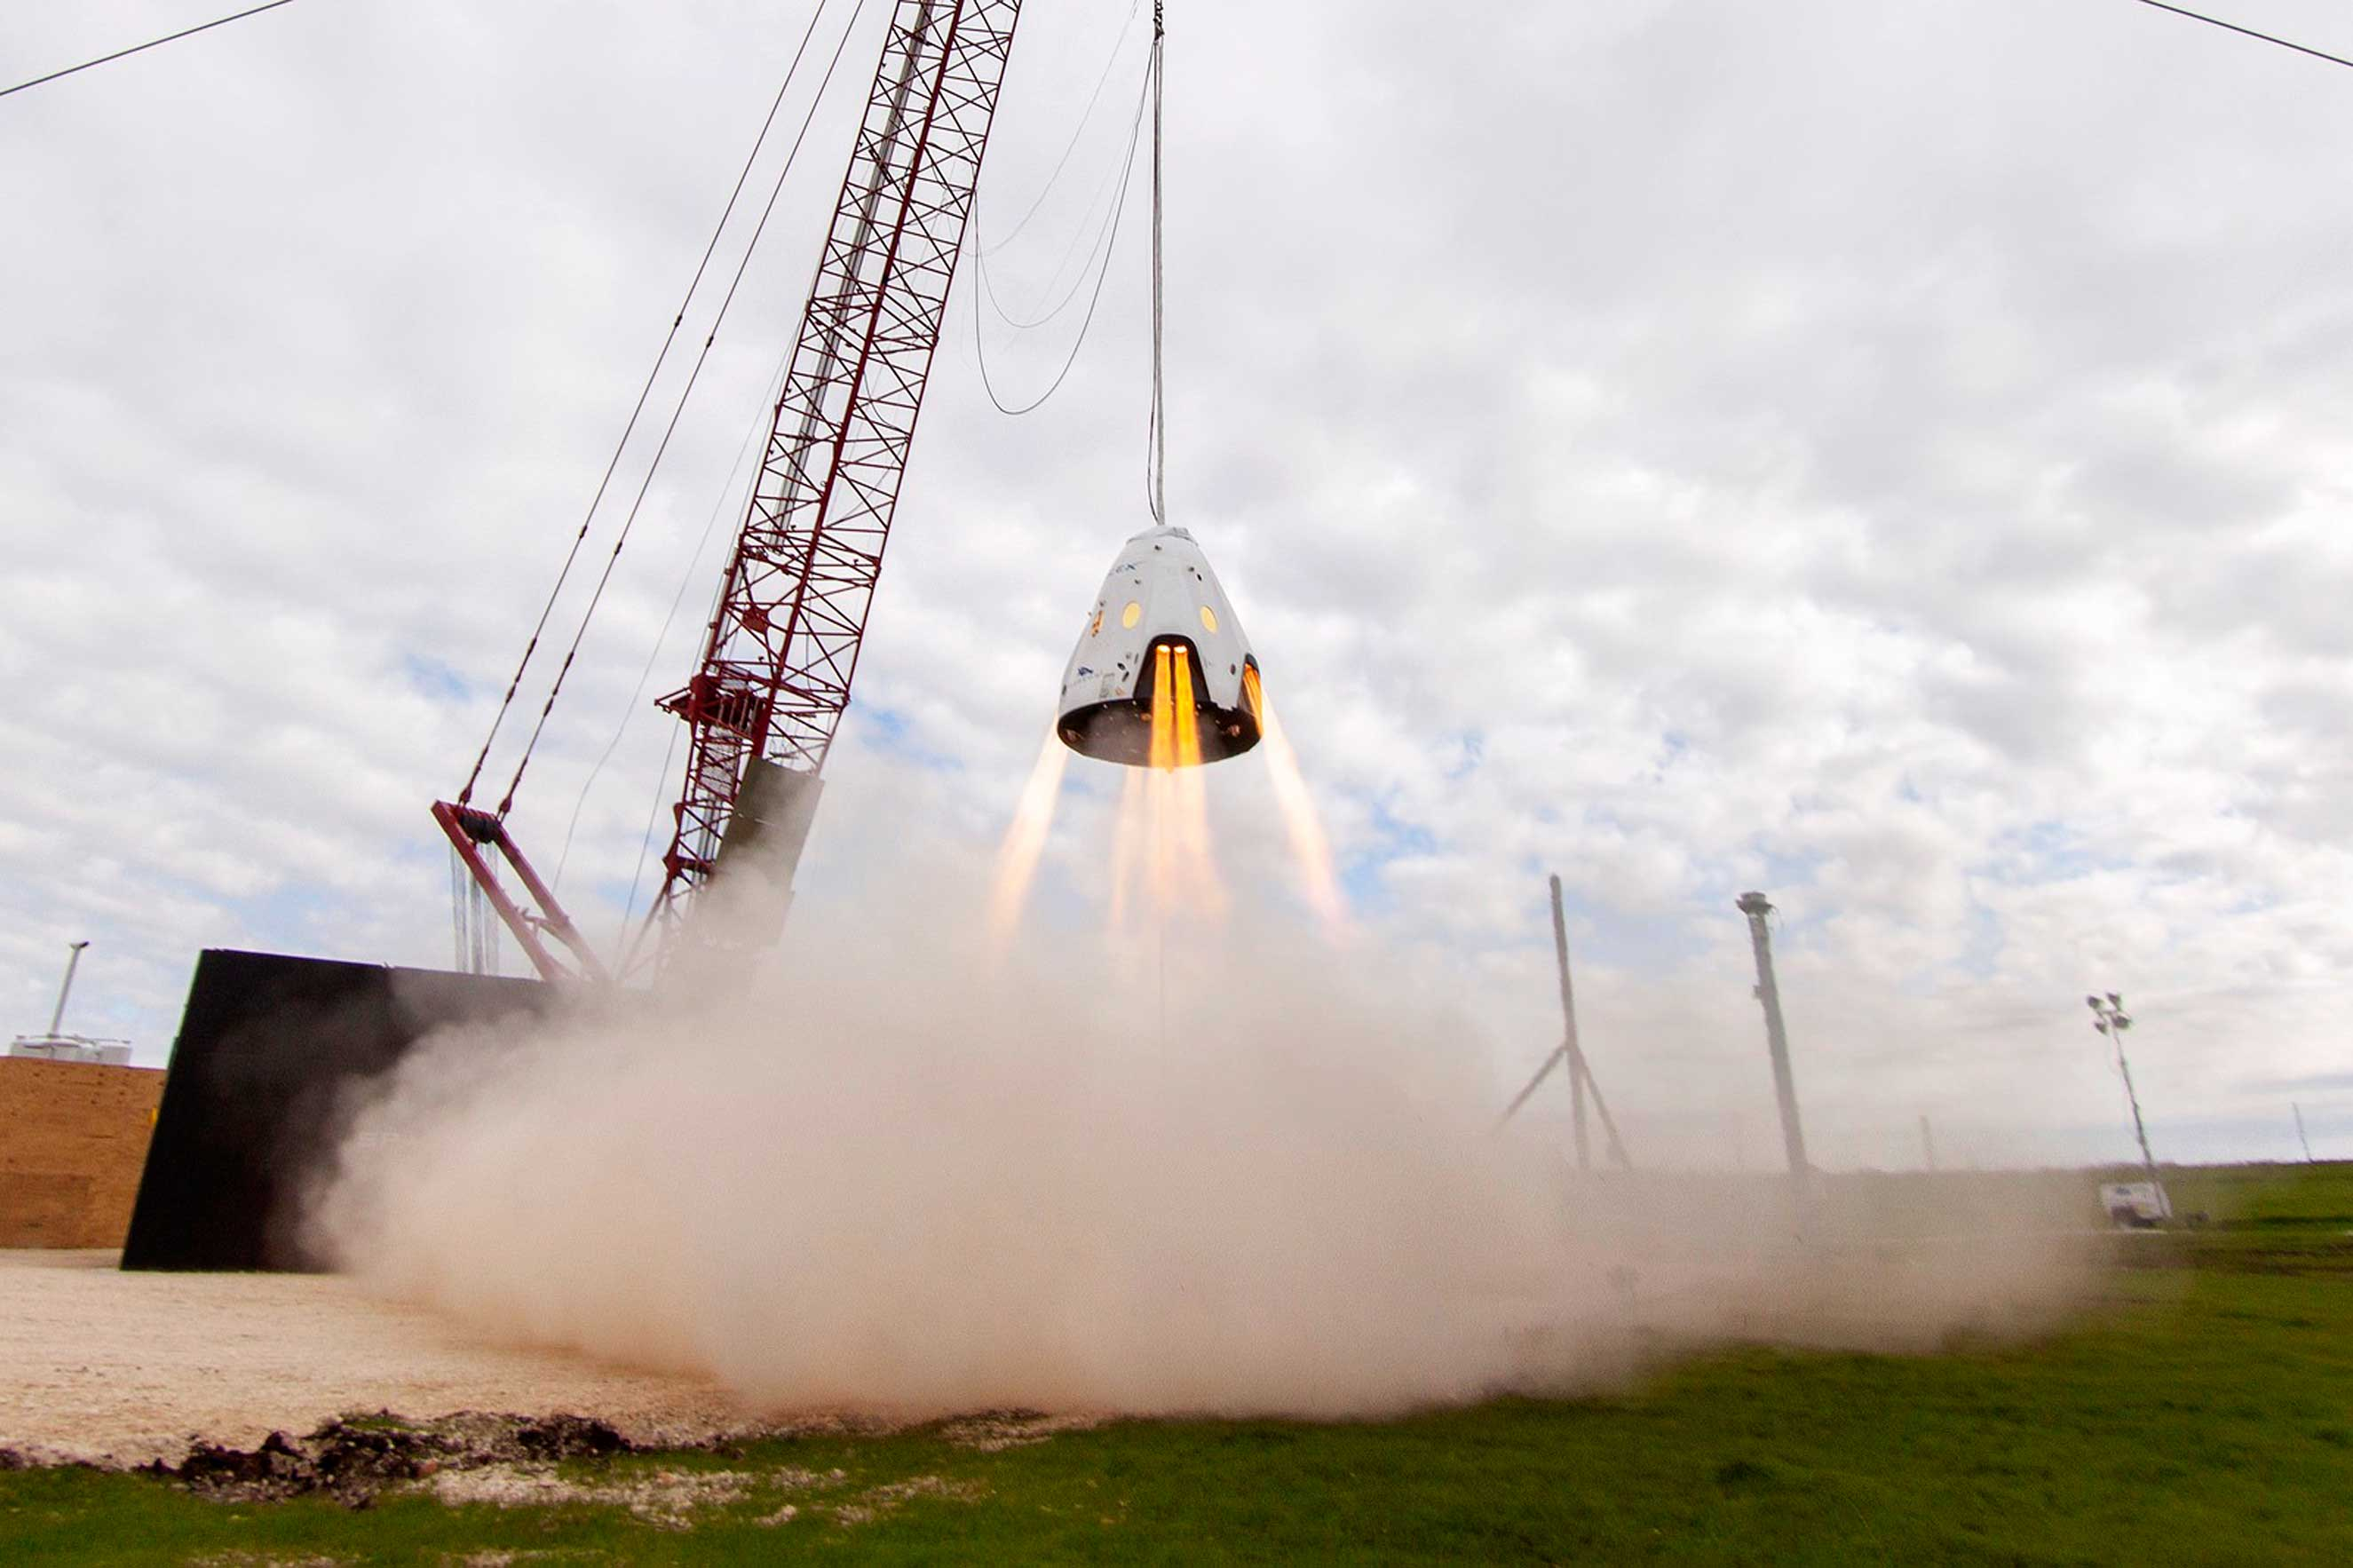 A test of the Dragon spacecraft's landing engines, which could be used in lieu of parachutes